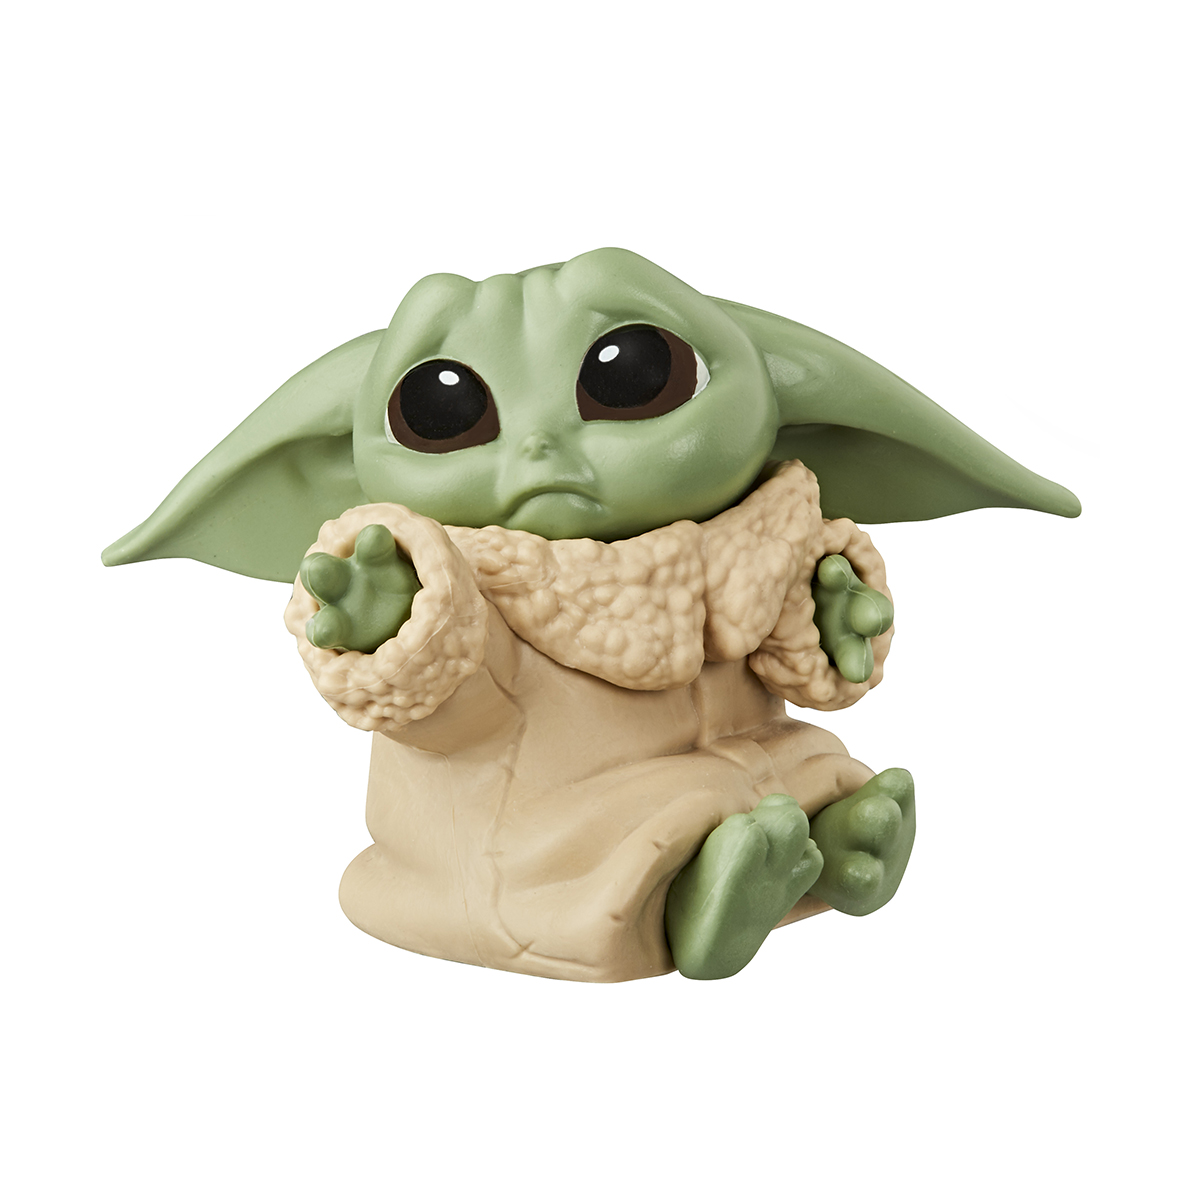 Figurina Star Wars Baby Yoda, Hold Me, F12195l00, 6 cm